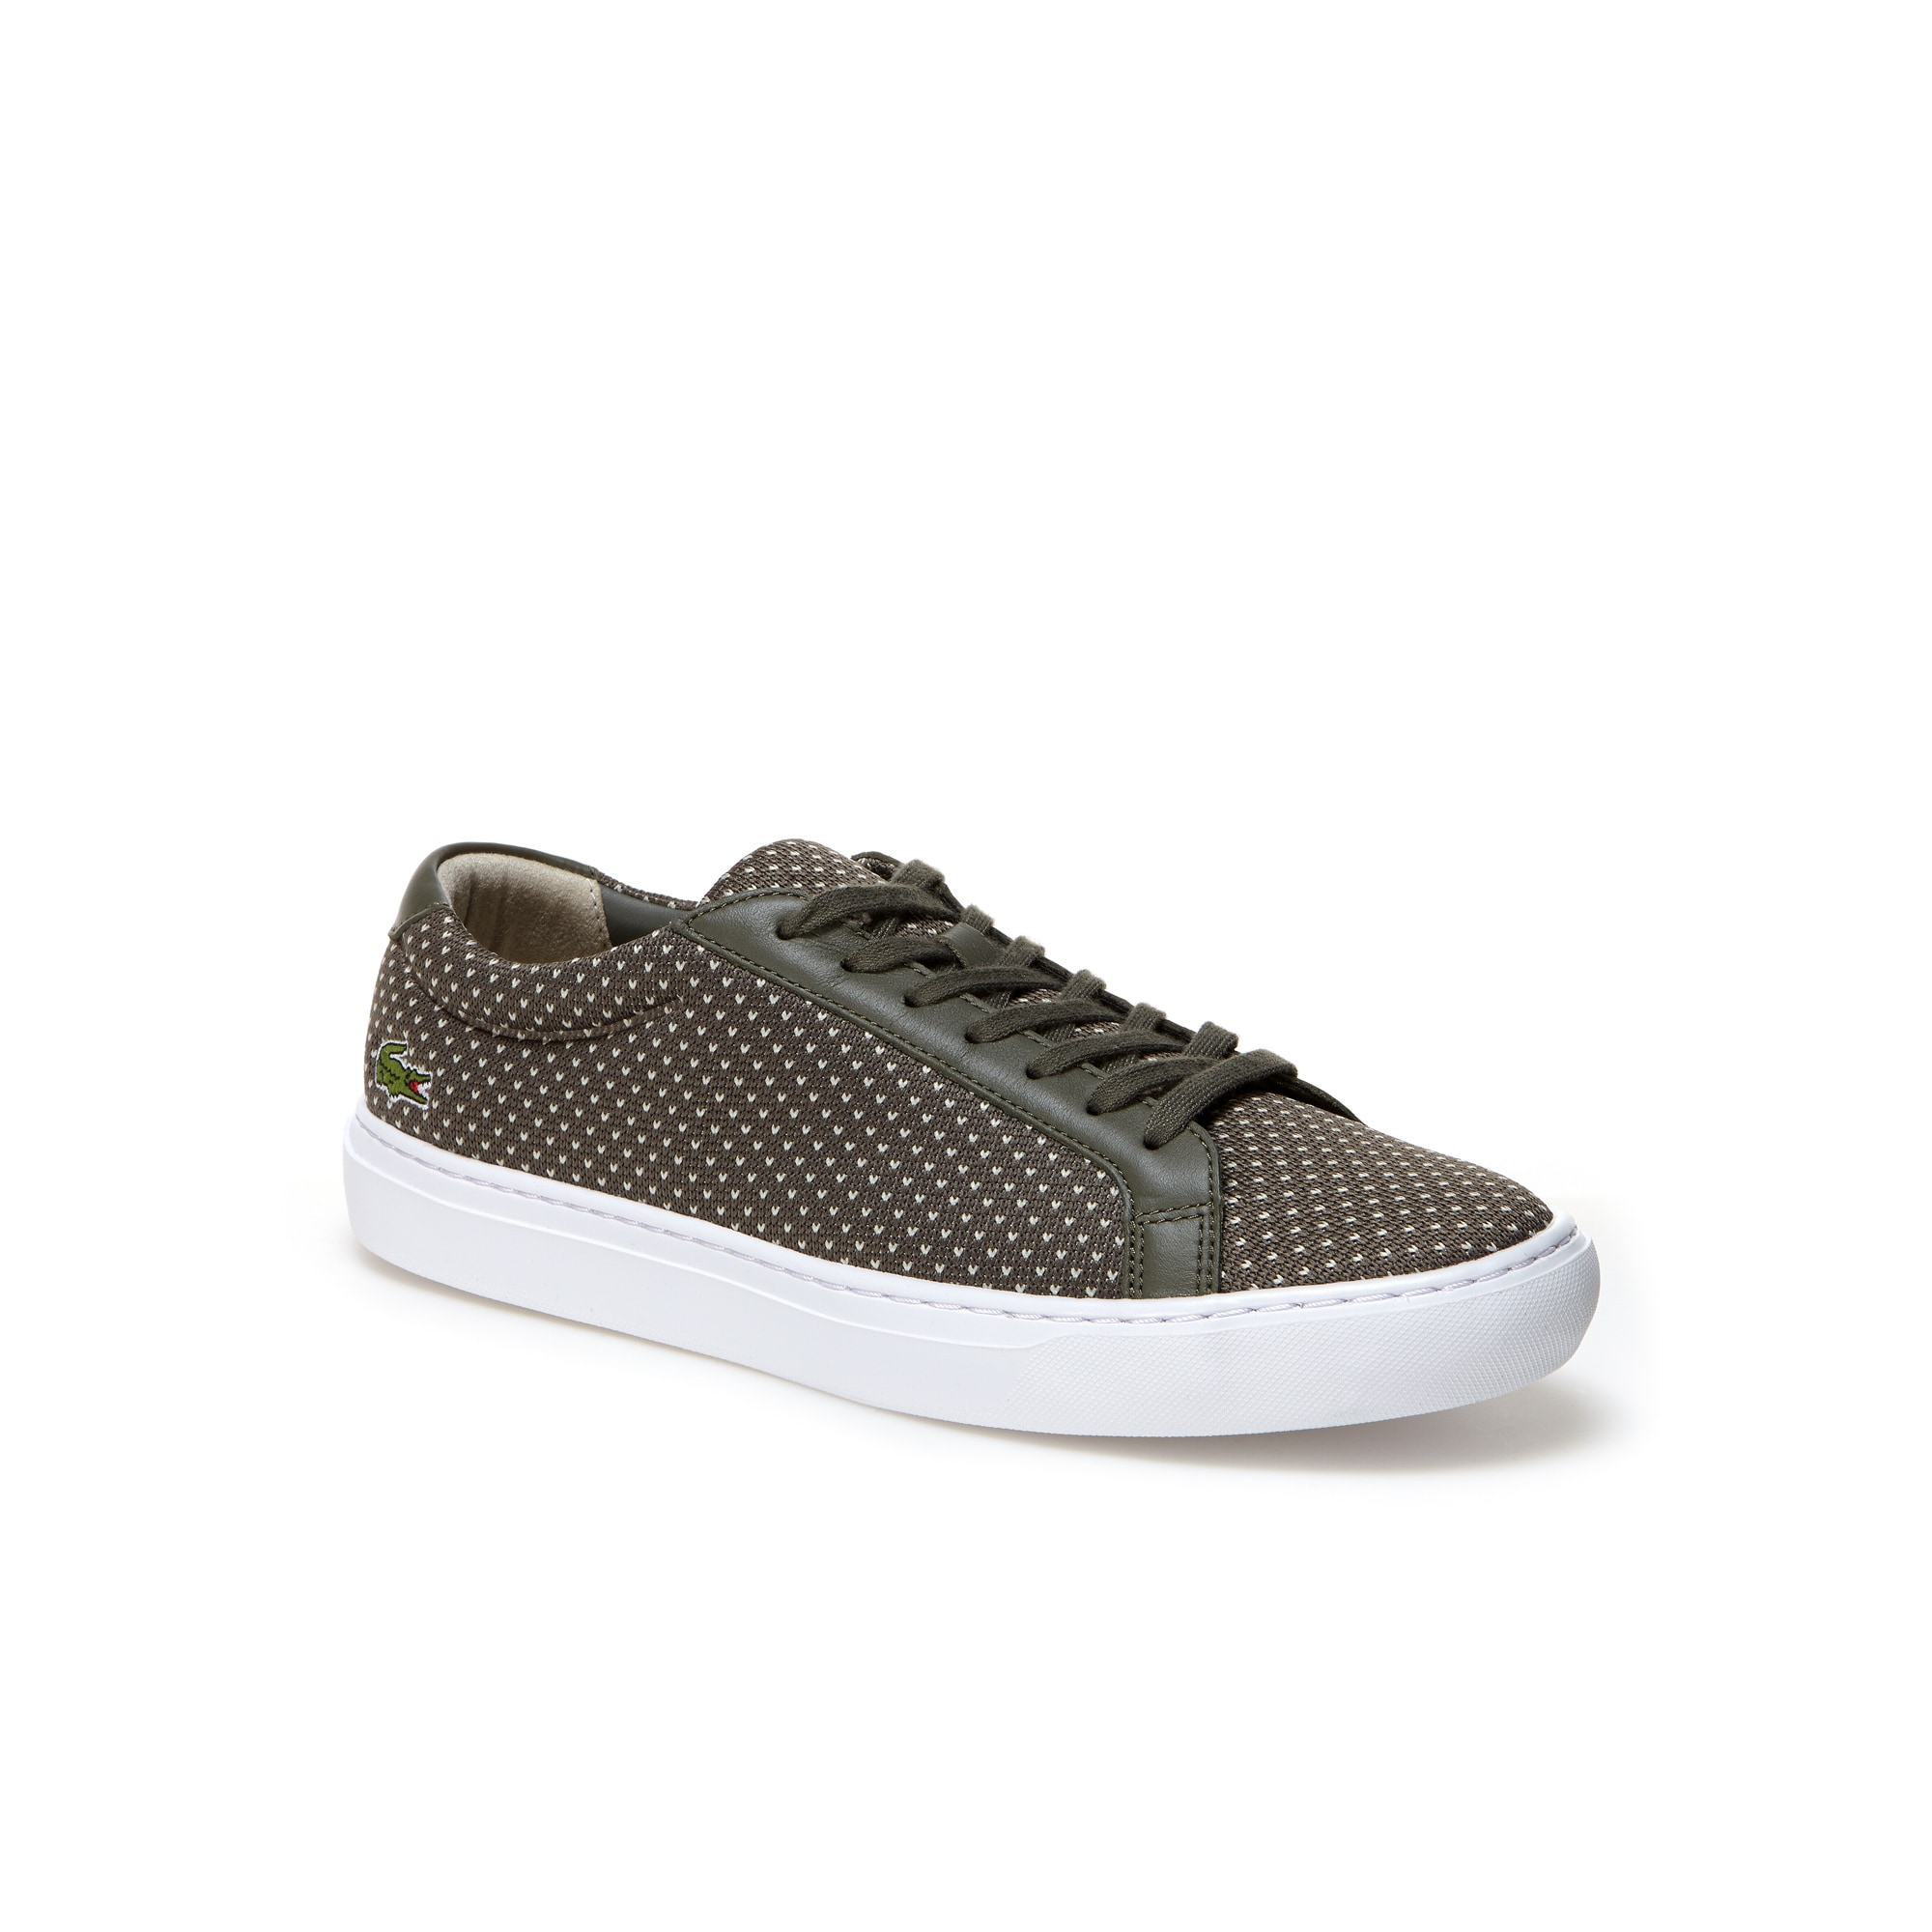 Lacoste Chaussures ZIANE CHUNKY CAM Lacoste soldes FS49Em1F6Z